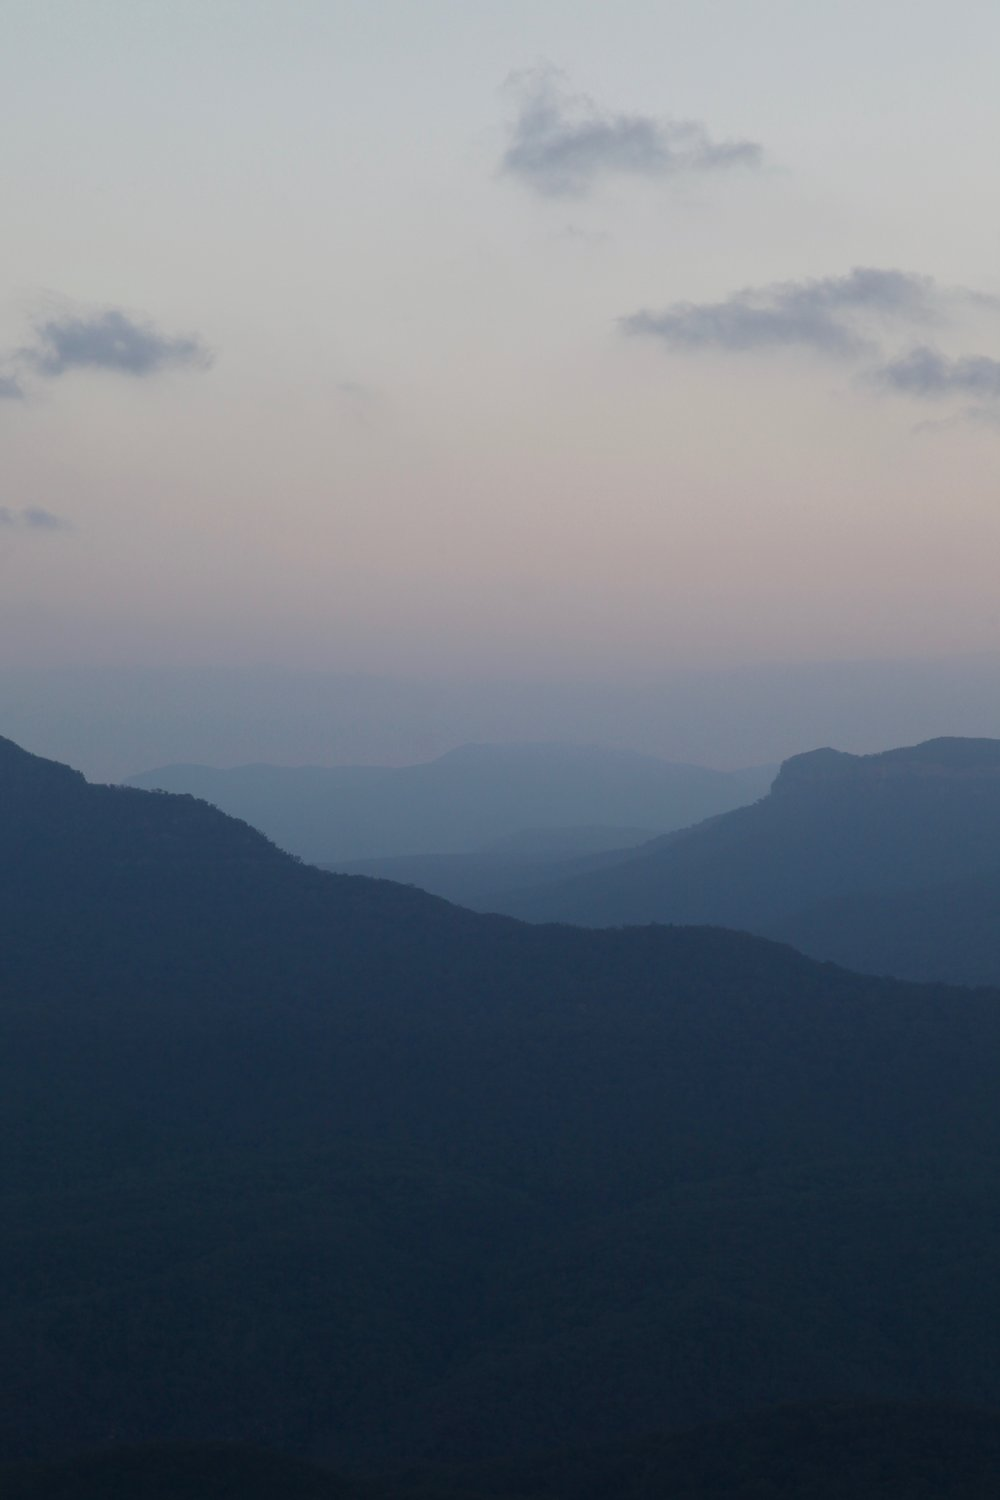 Sunset viewed from Gordon Falls lookout at Leura in the Blue Mountains.